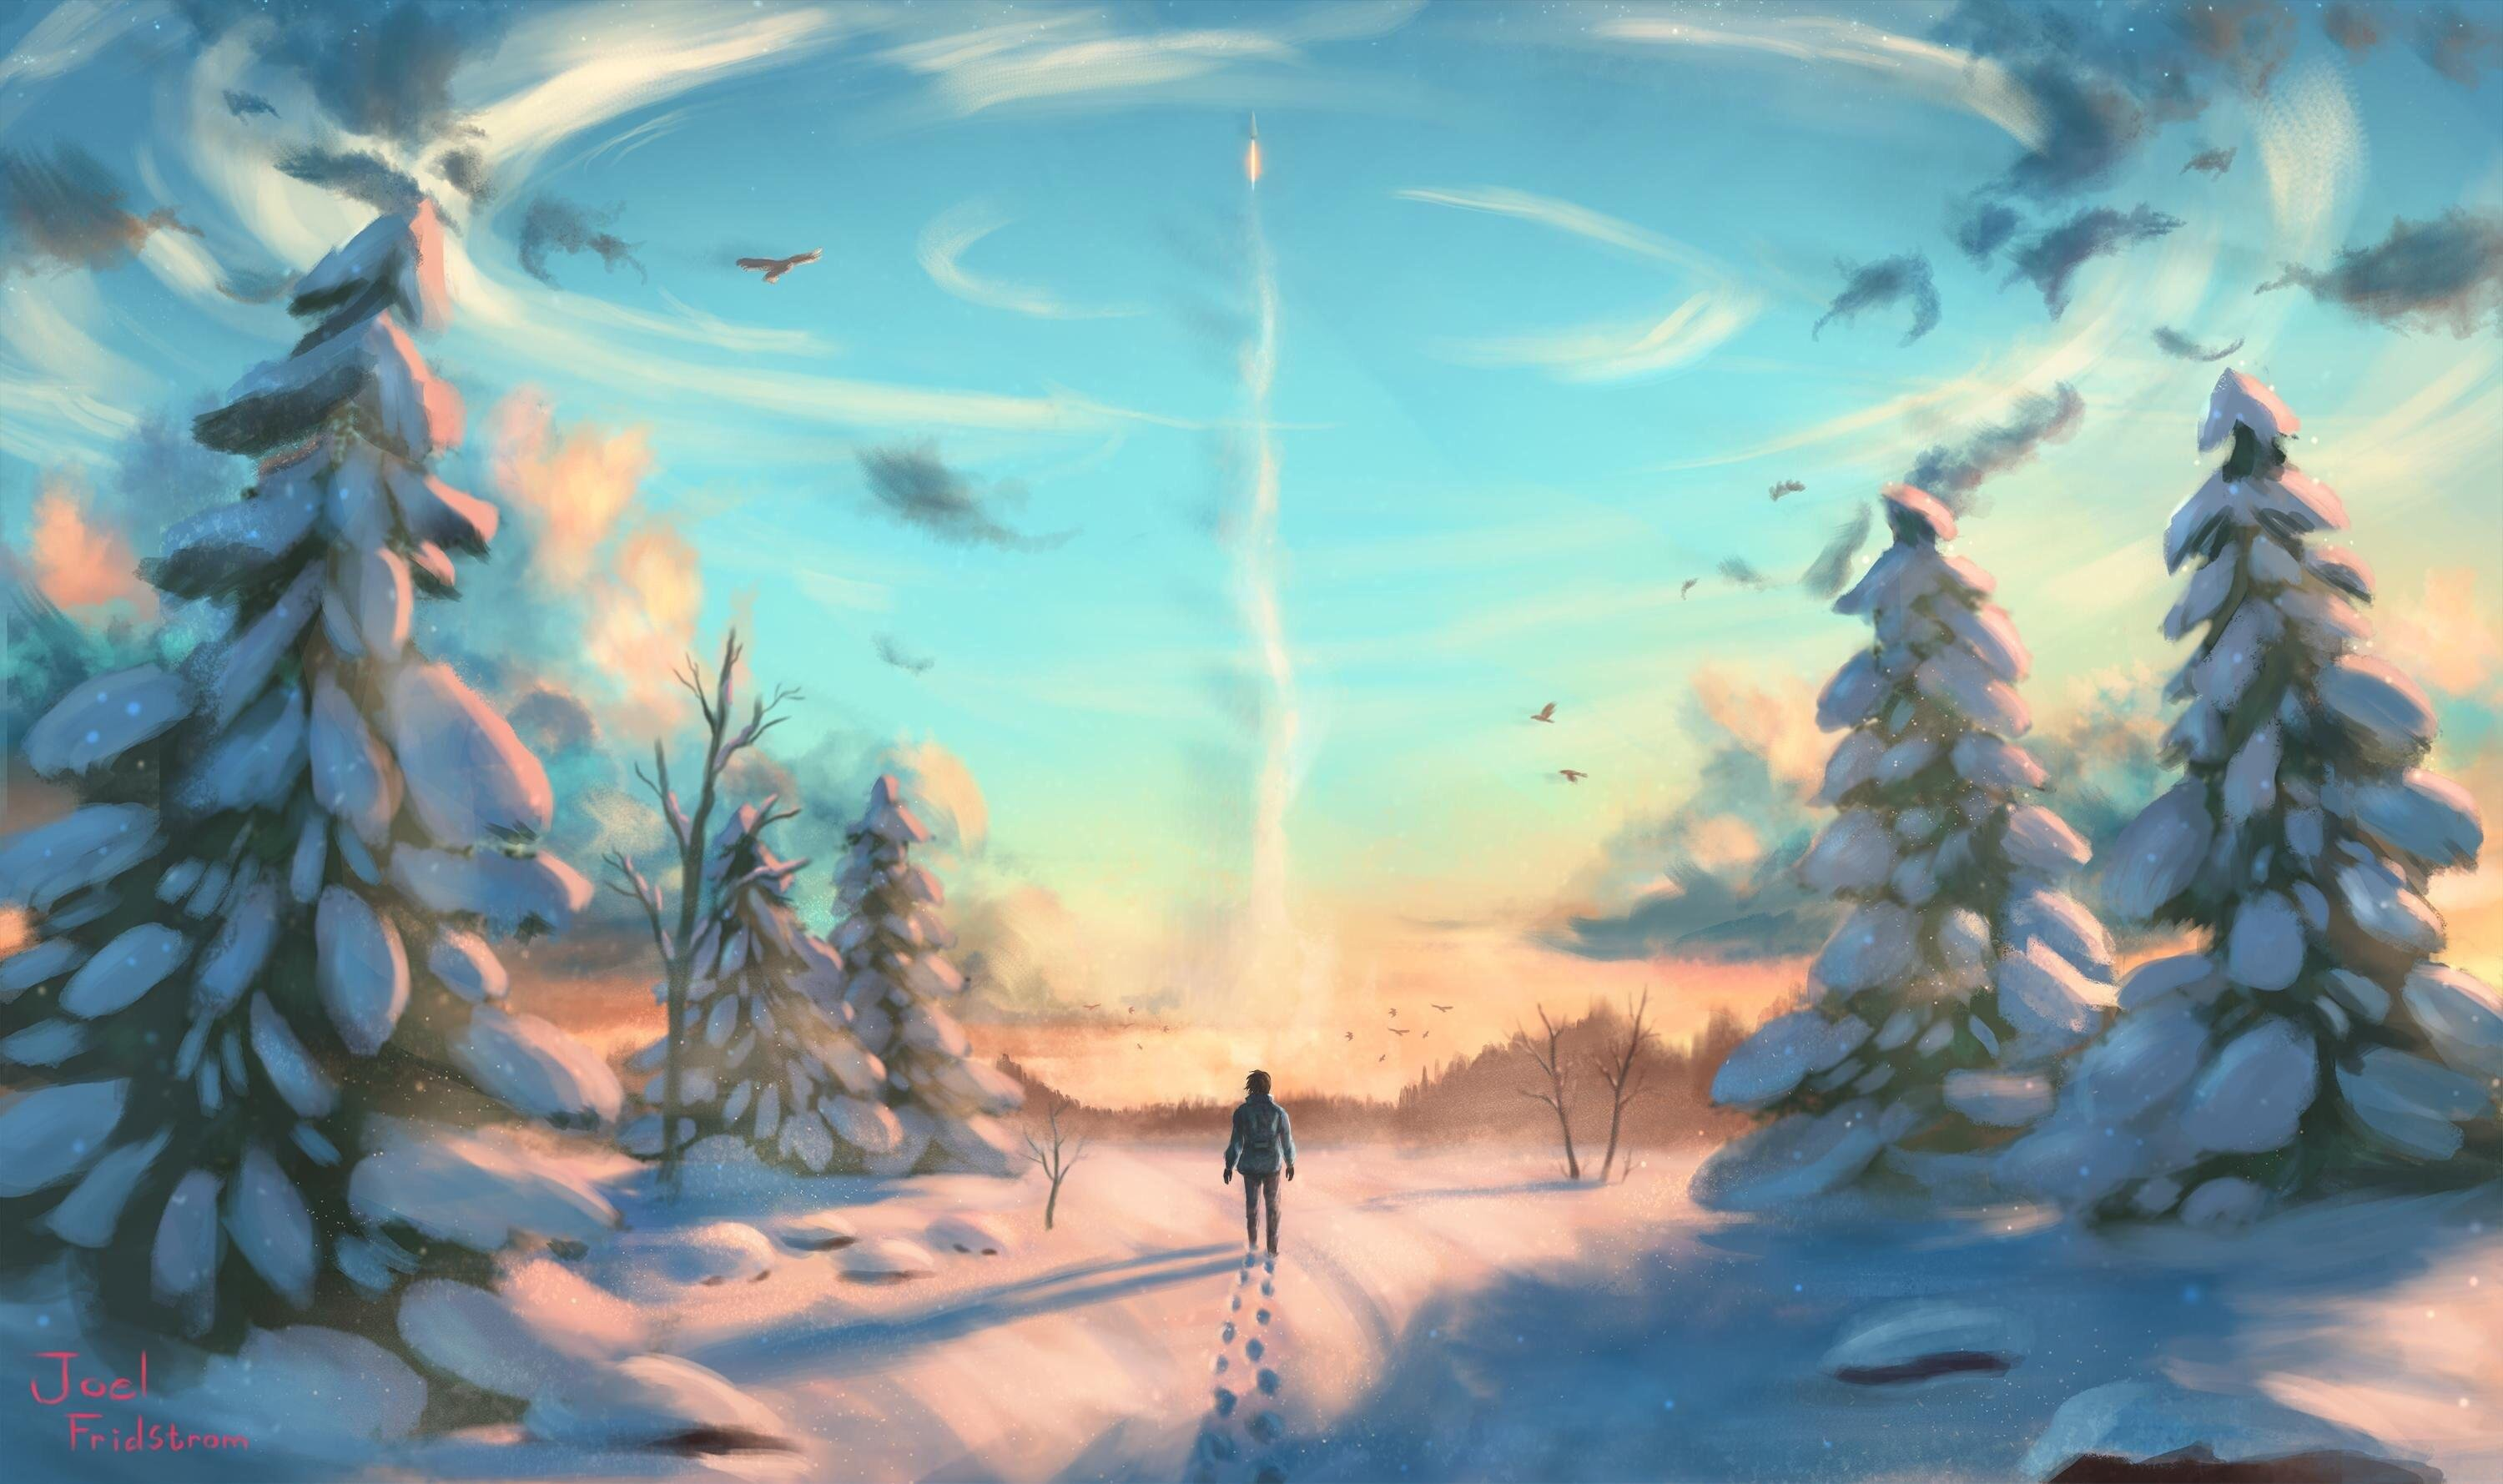 winter wallpapers, photos and desktop backgrounds up to 8K ...